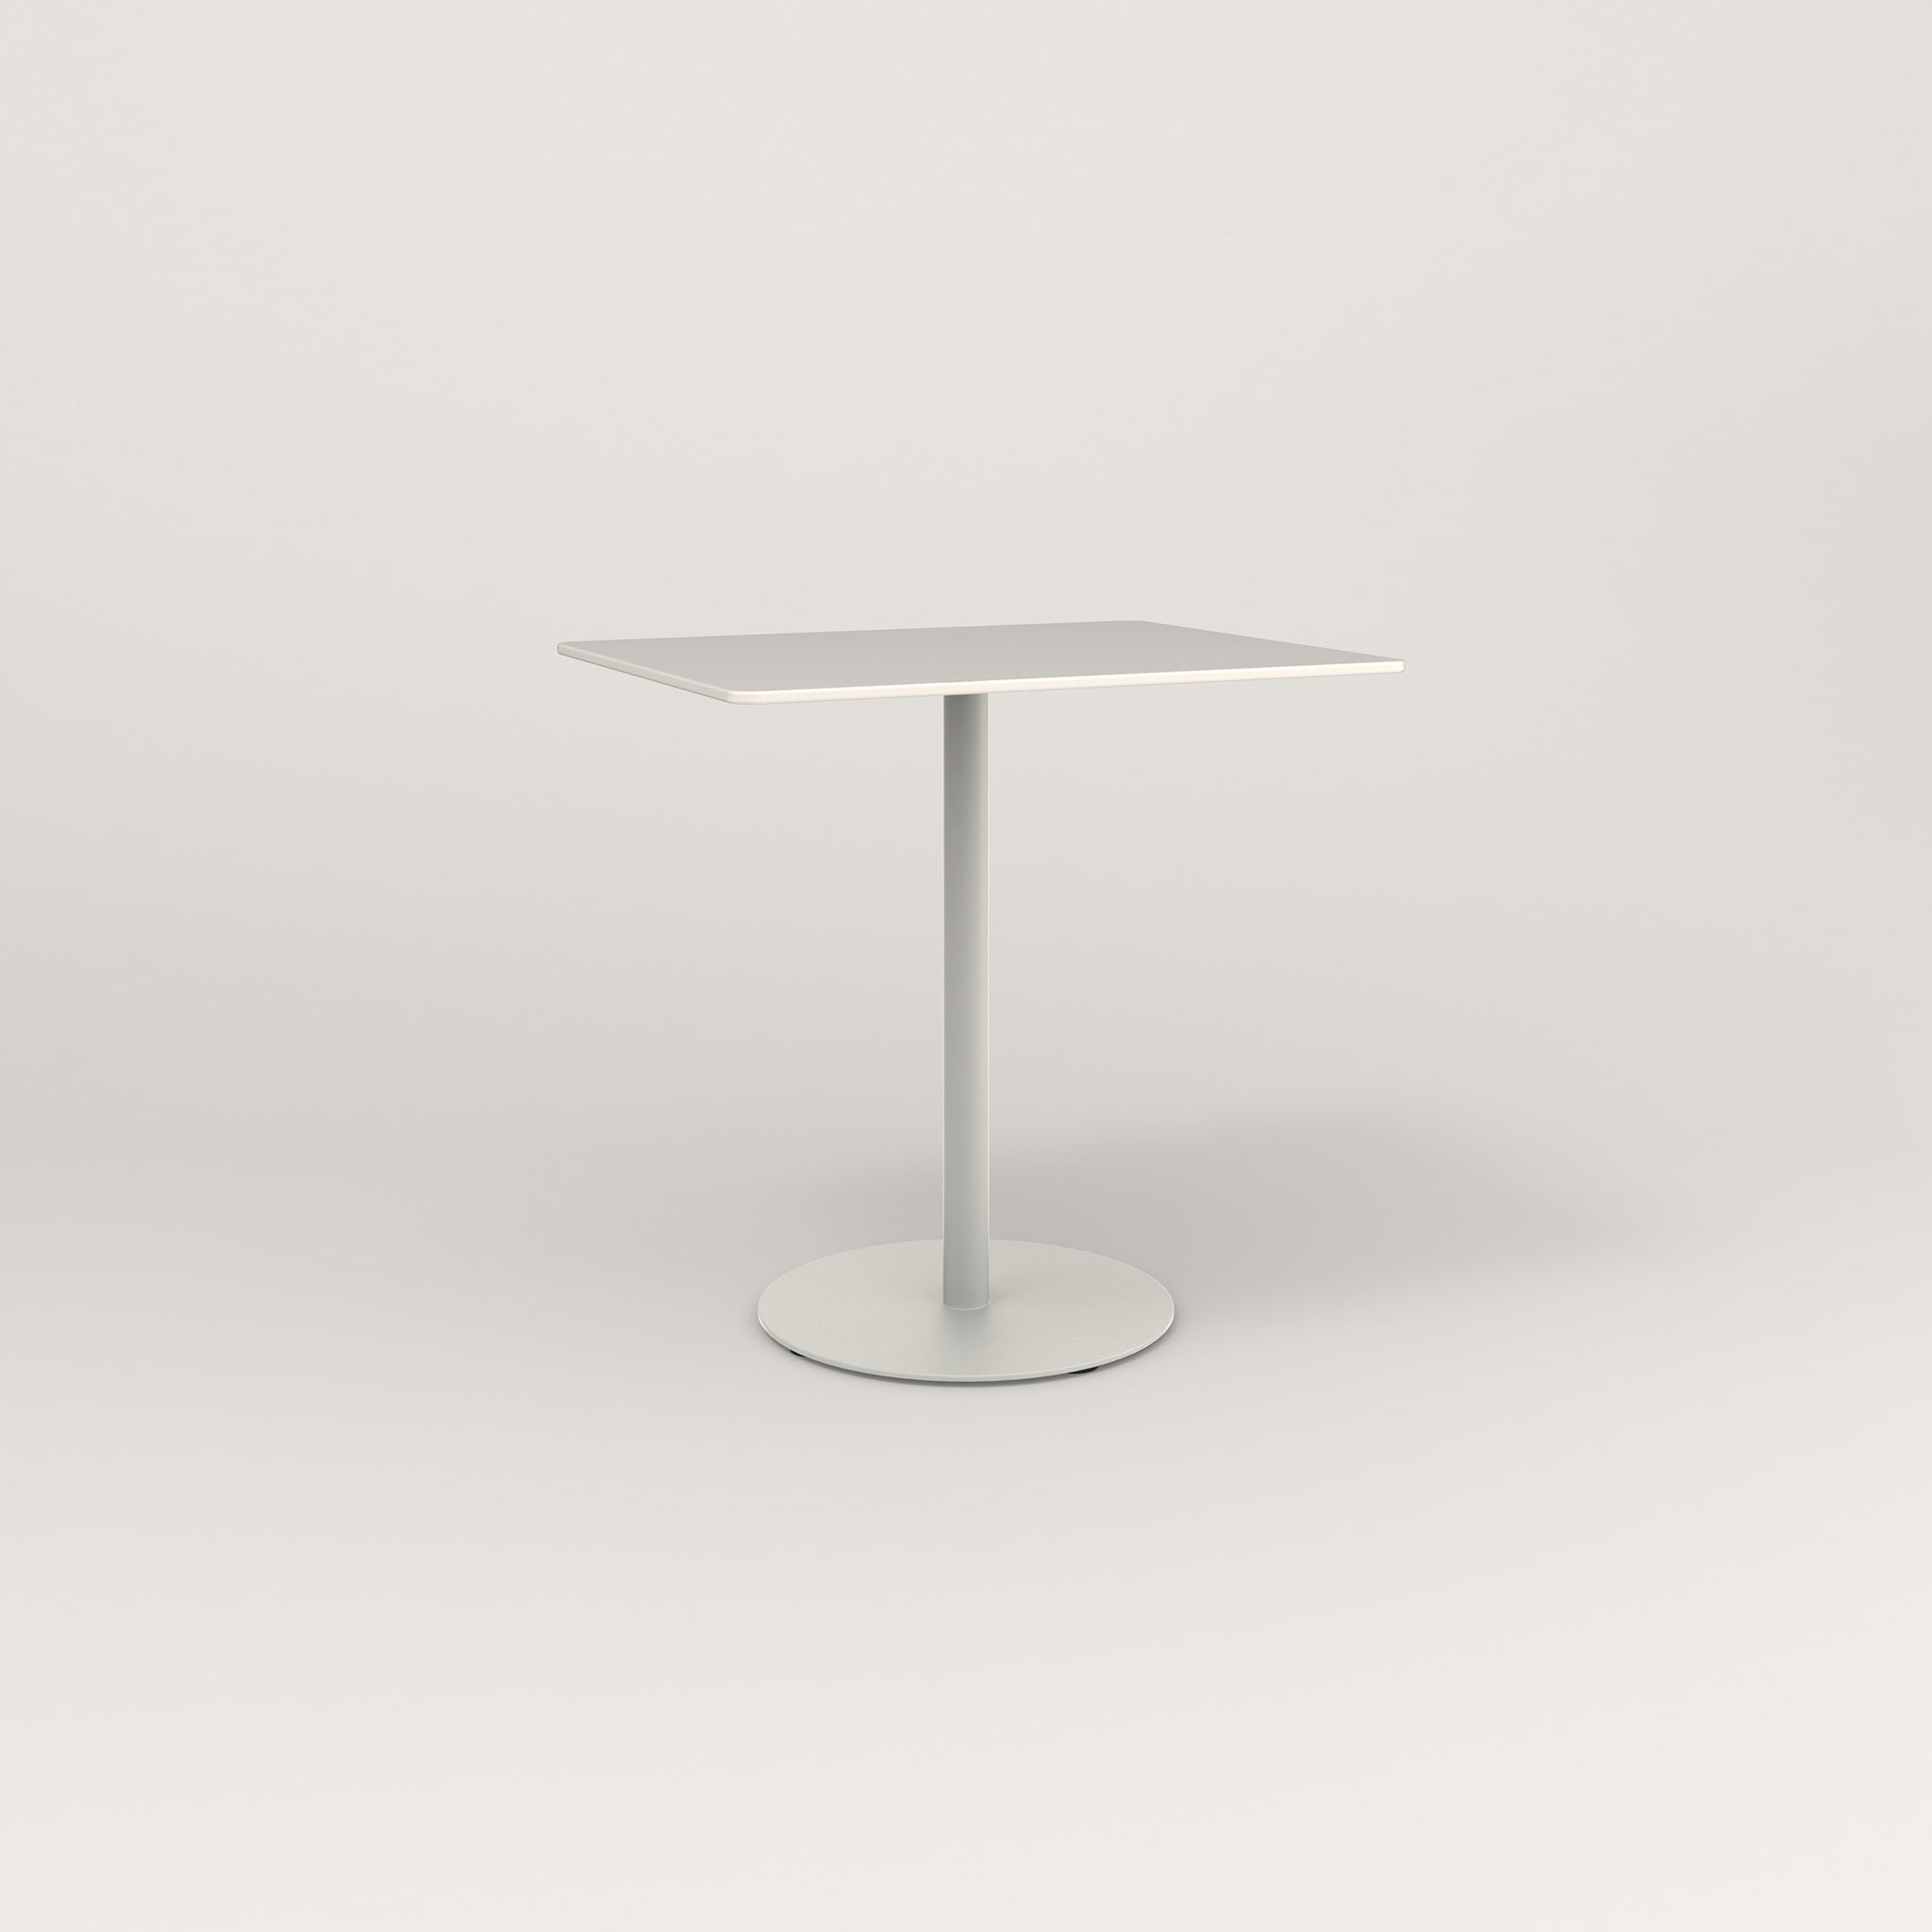 RAD Cafe Table, Rectangular Weighted Base in acrylic and white powder coat.